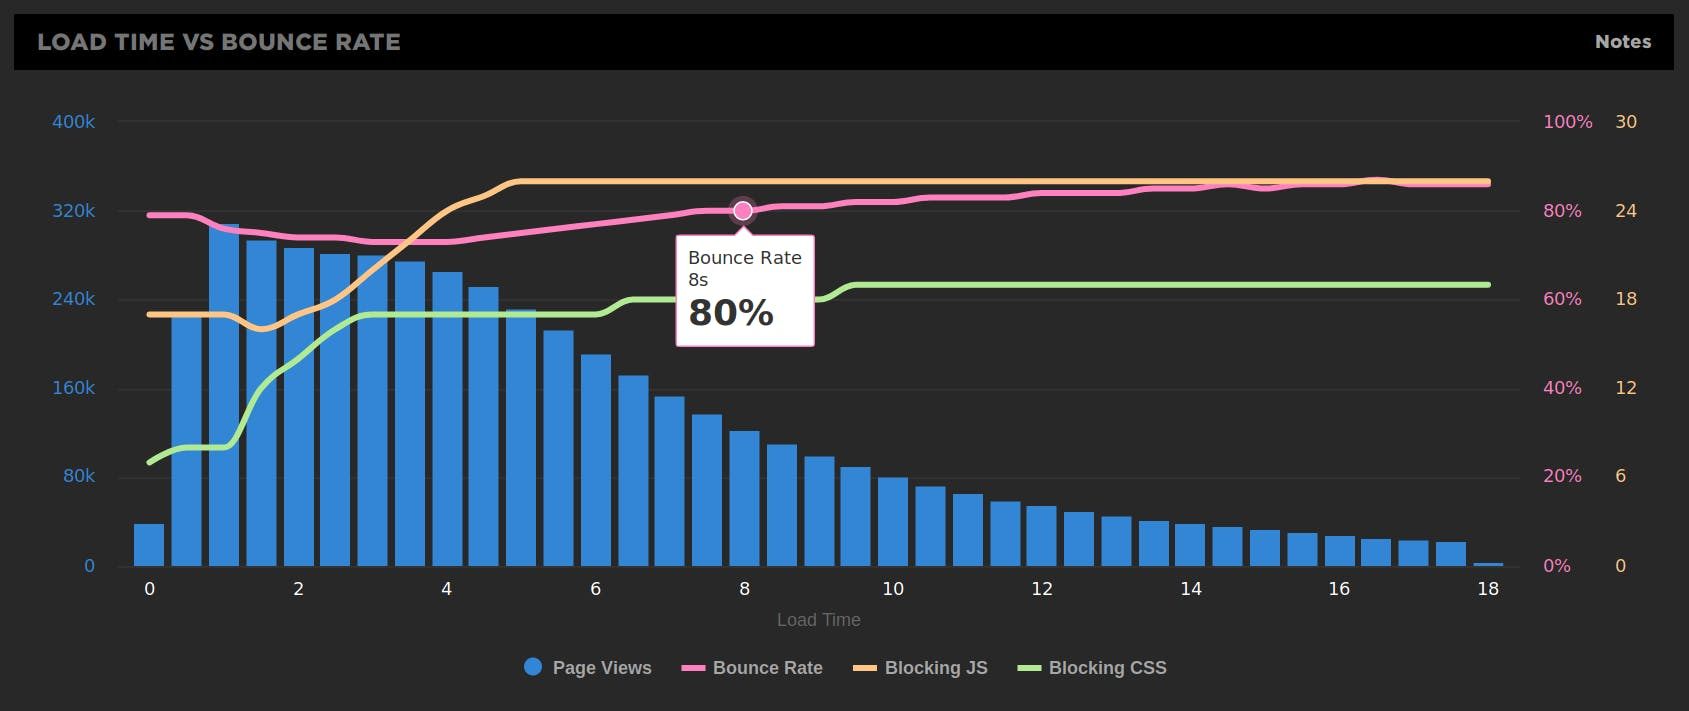 LUX load time vs bounce rate